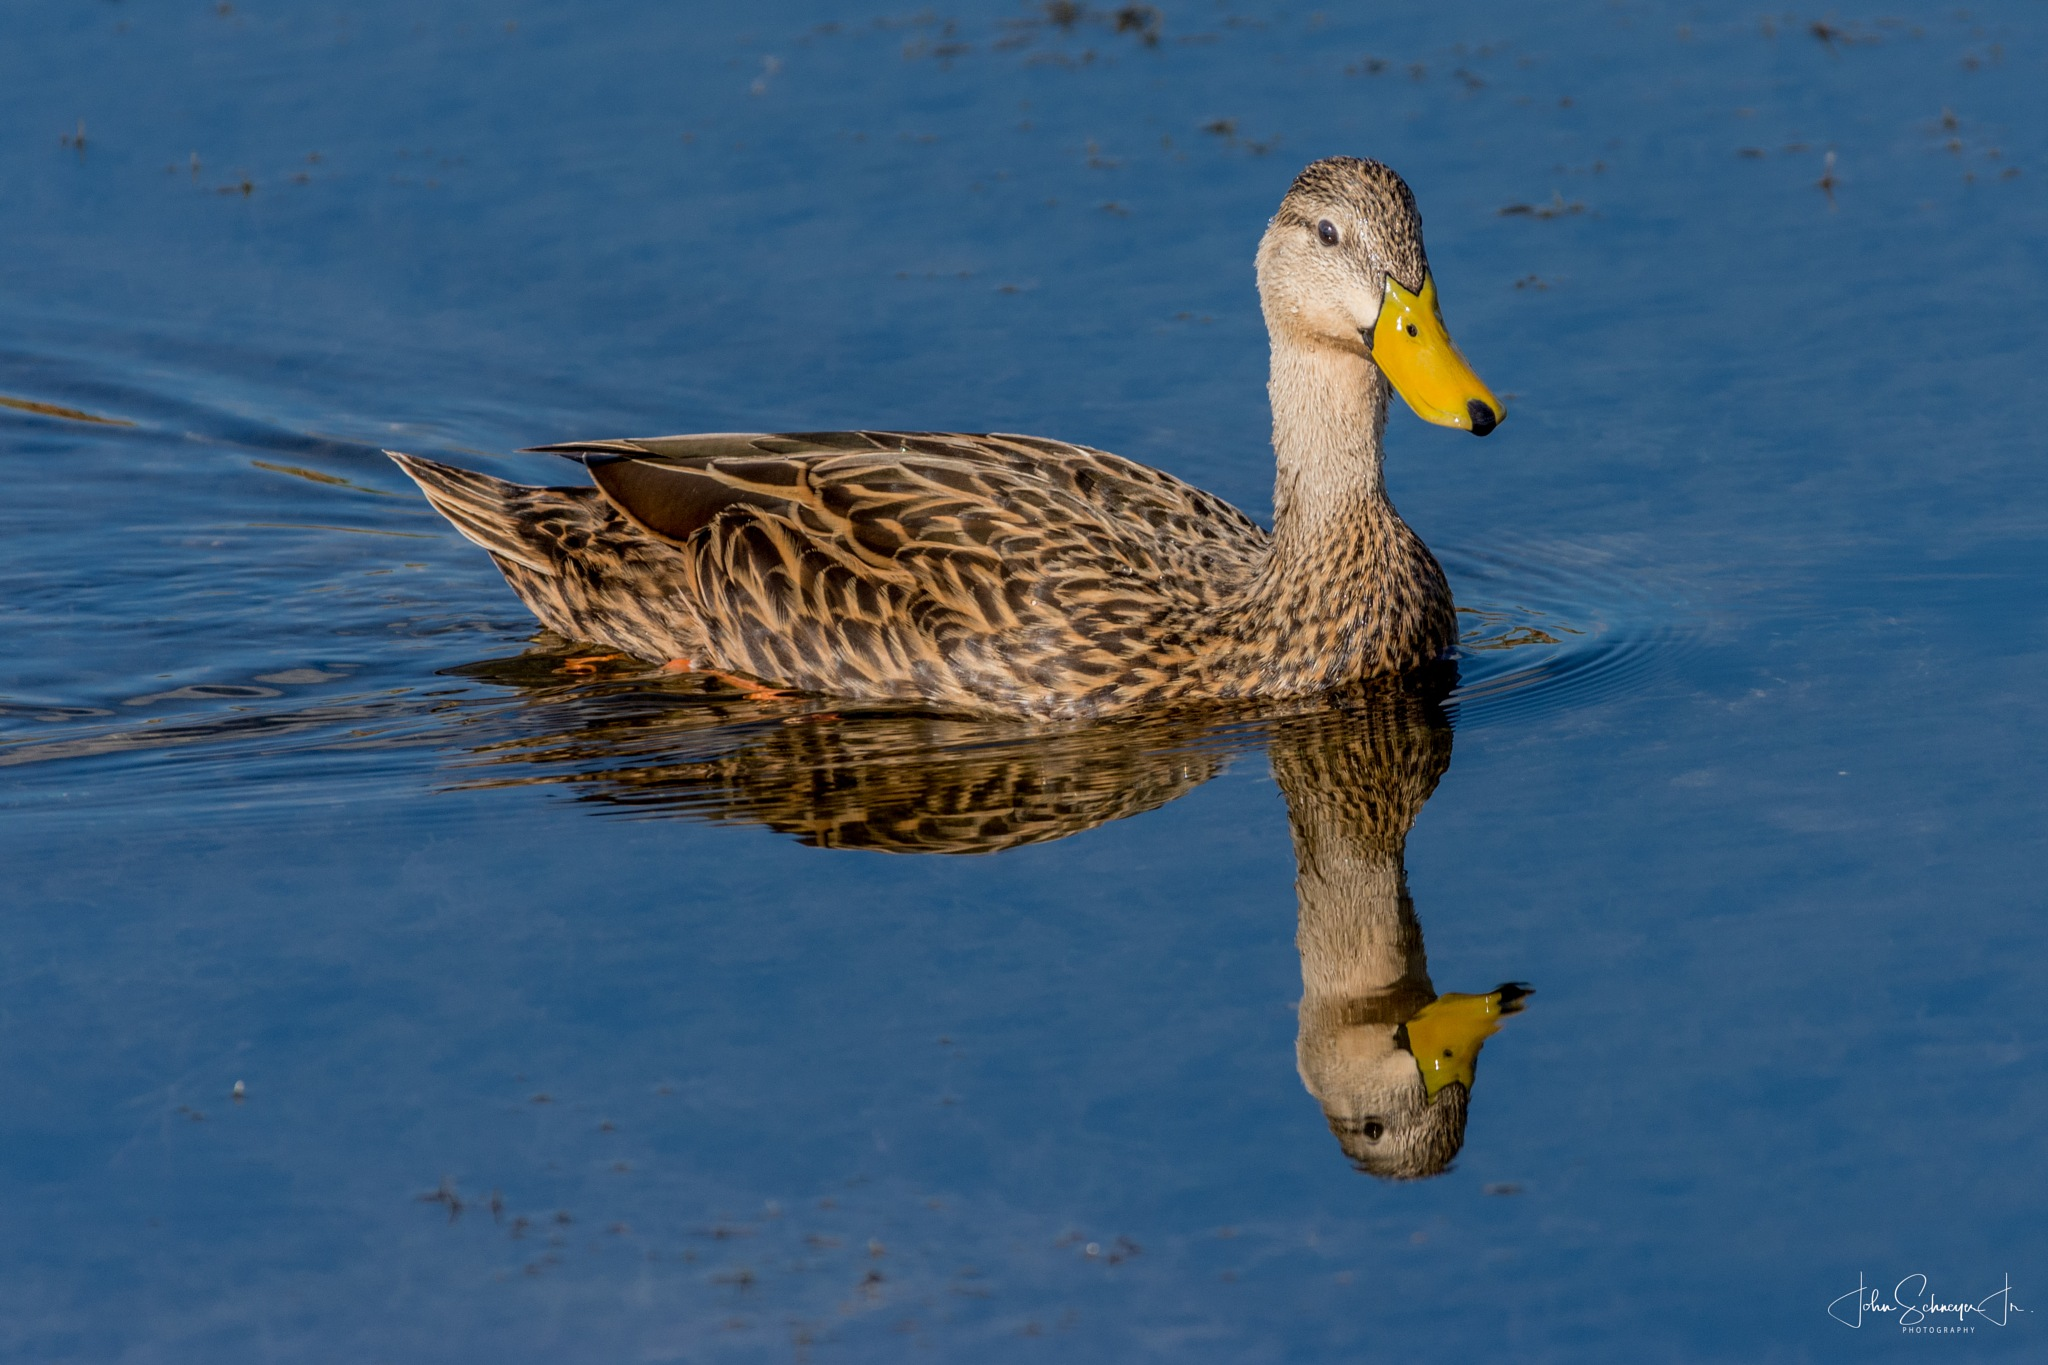 Cruising Duck with Reflection by John Schneyer